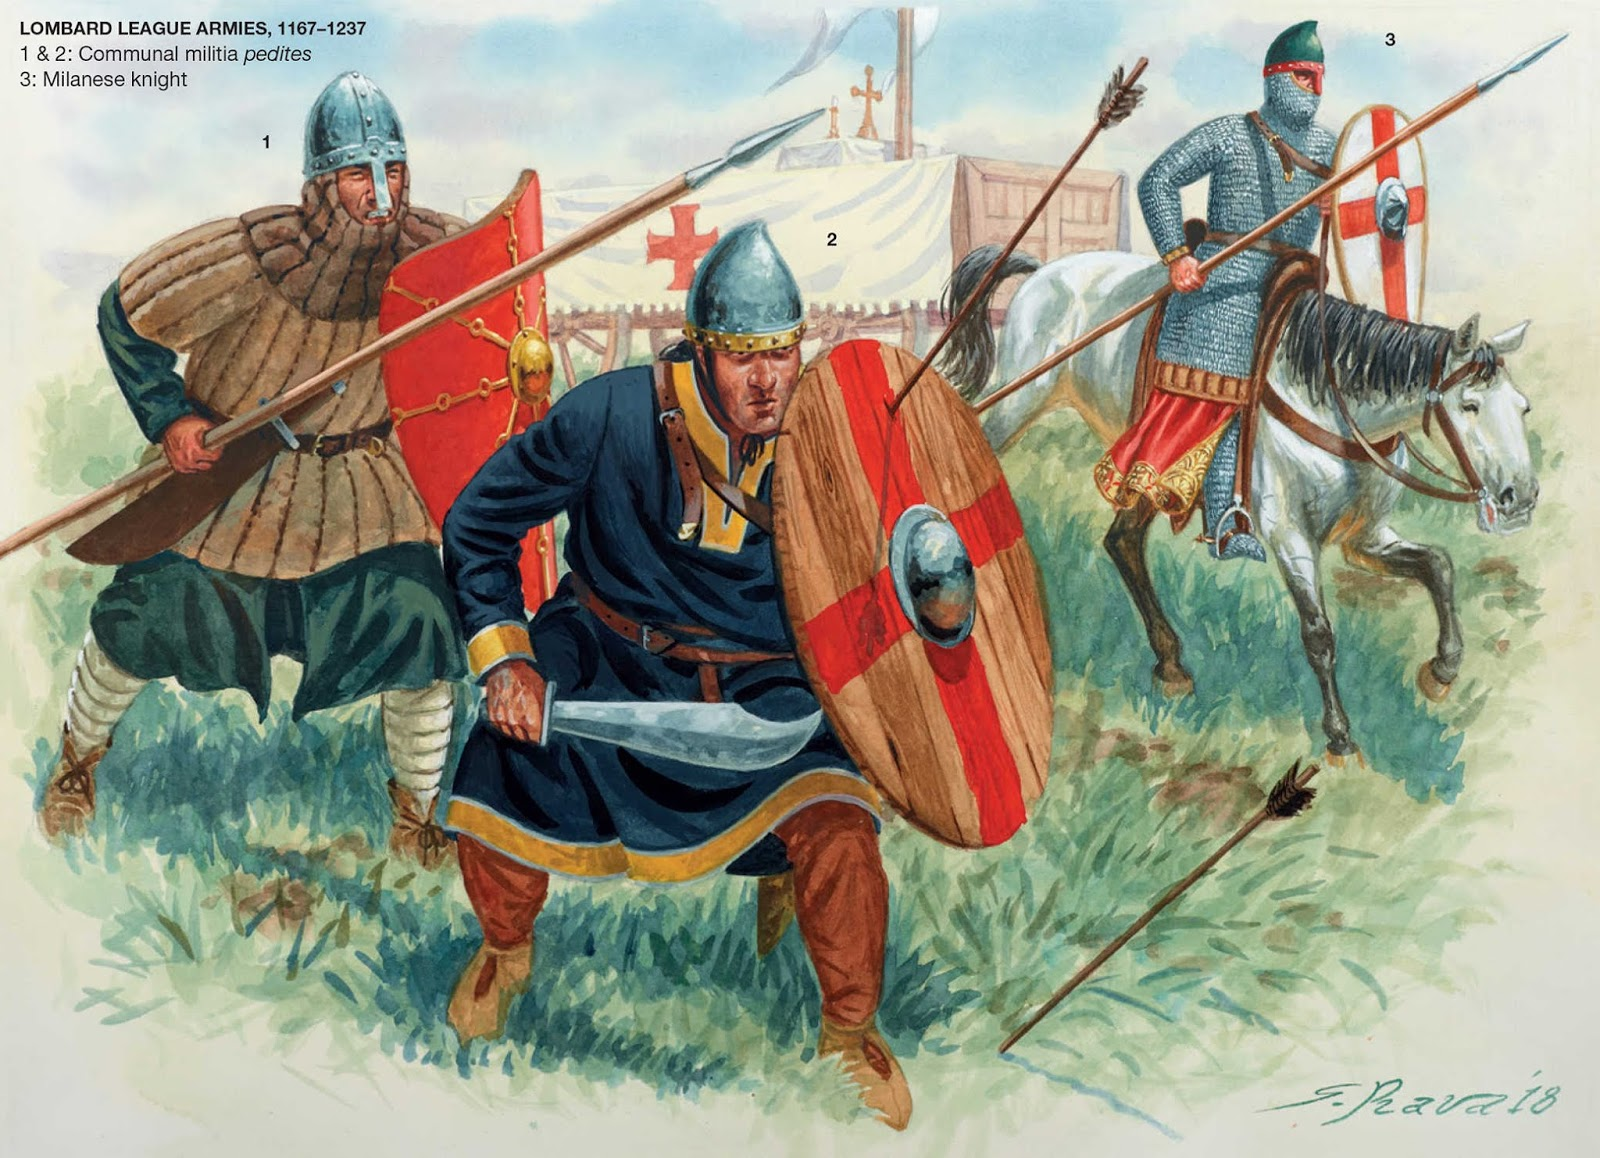 1325 Armies of the Medieval Italian Wars 1125